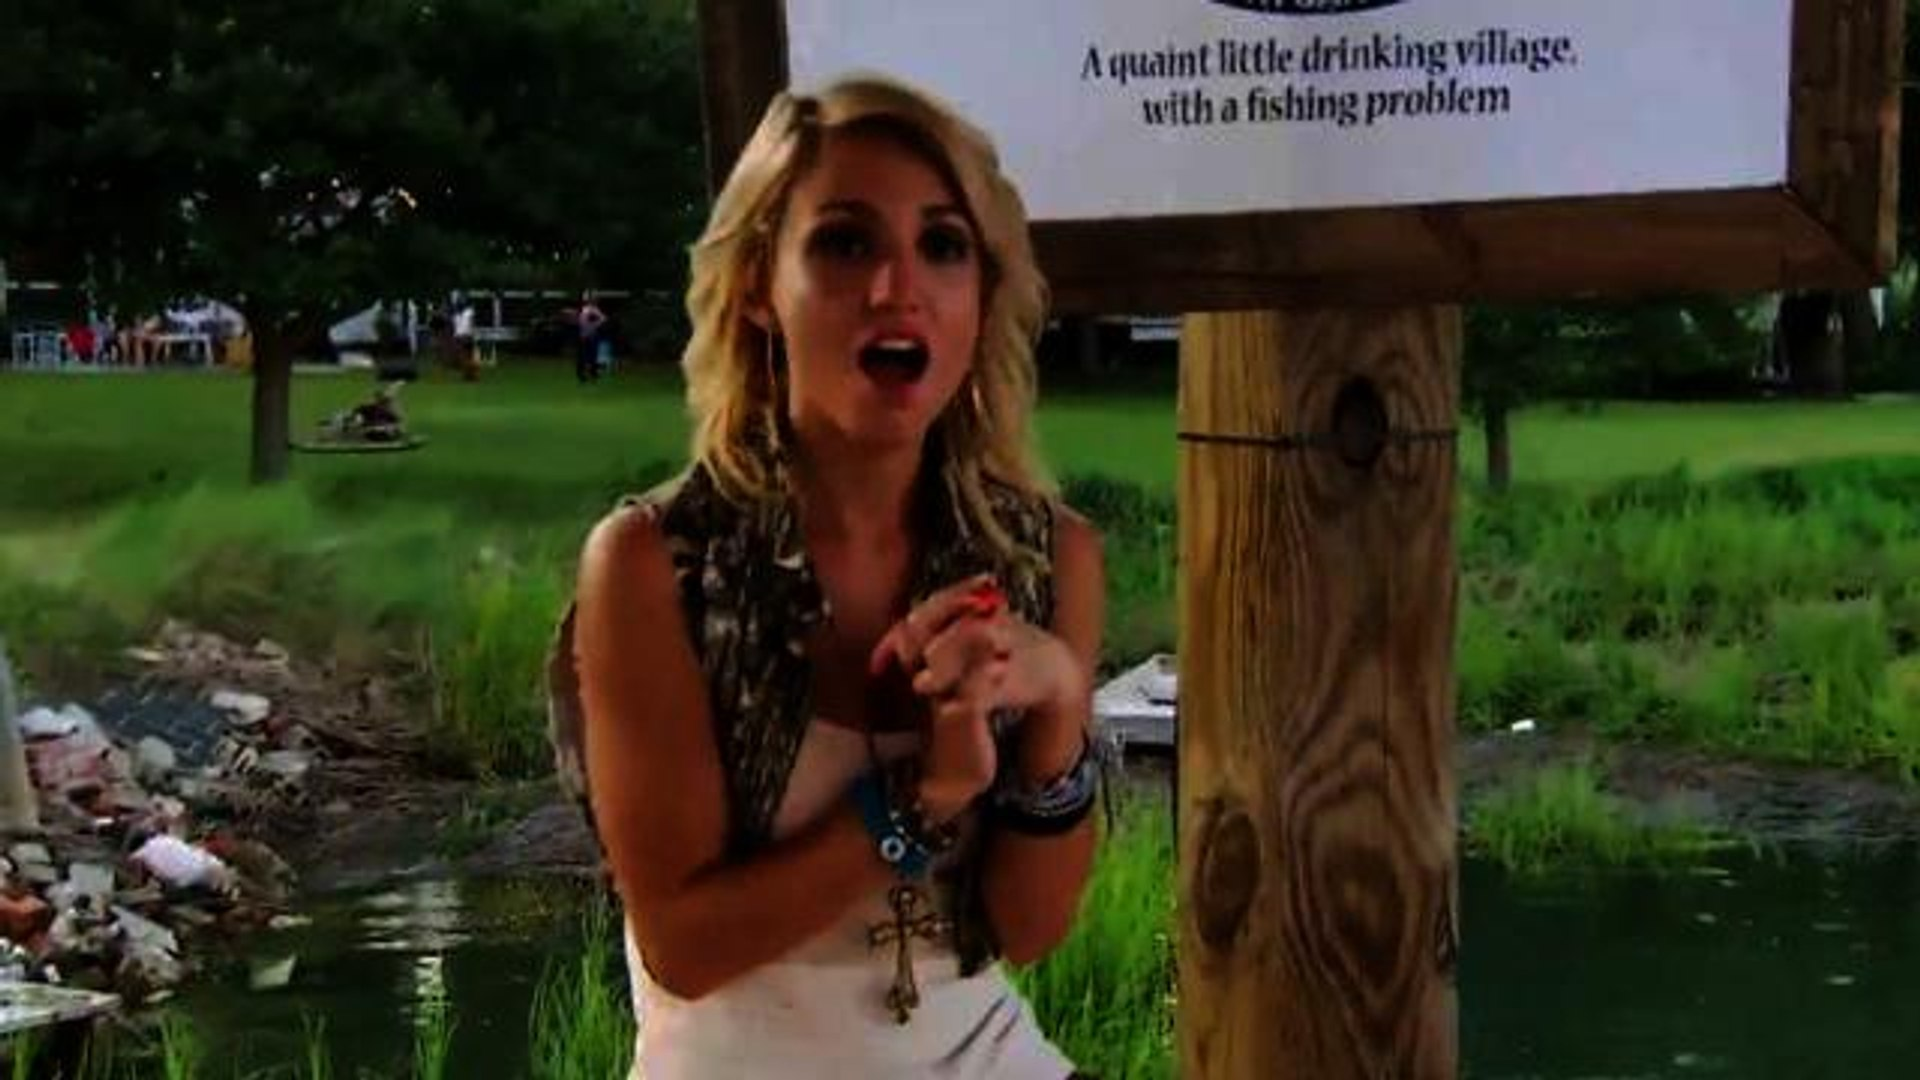 CMT's 'Party Down South' Could be Next 'Duck Dynasty' or 'Jersey Shore'